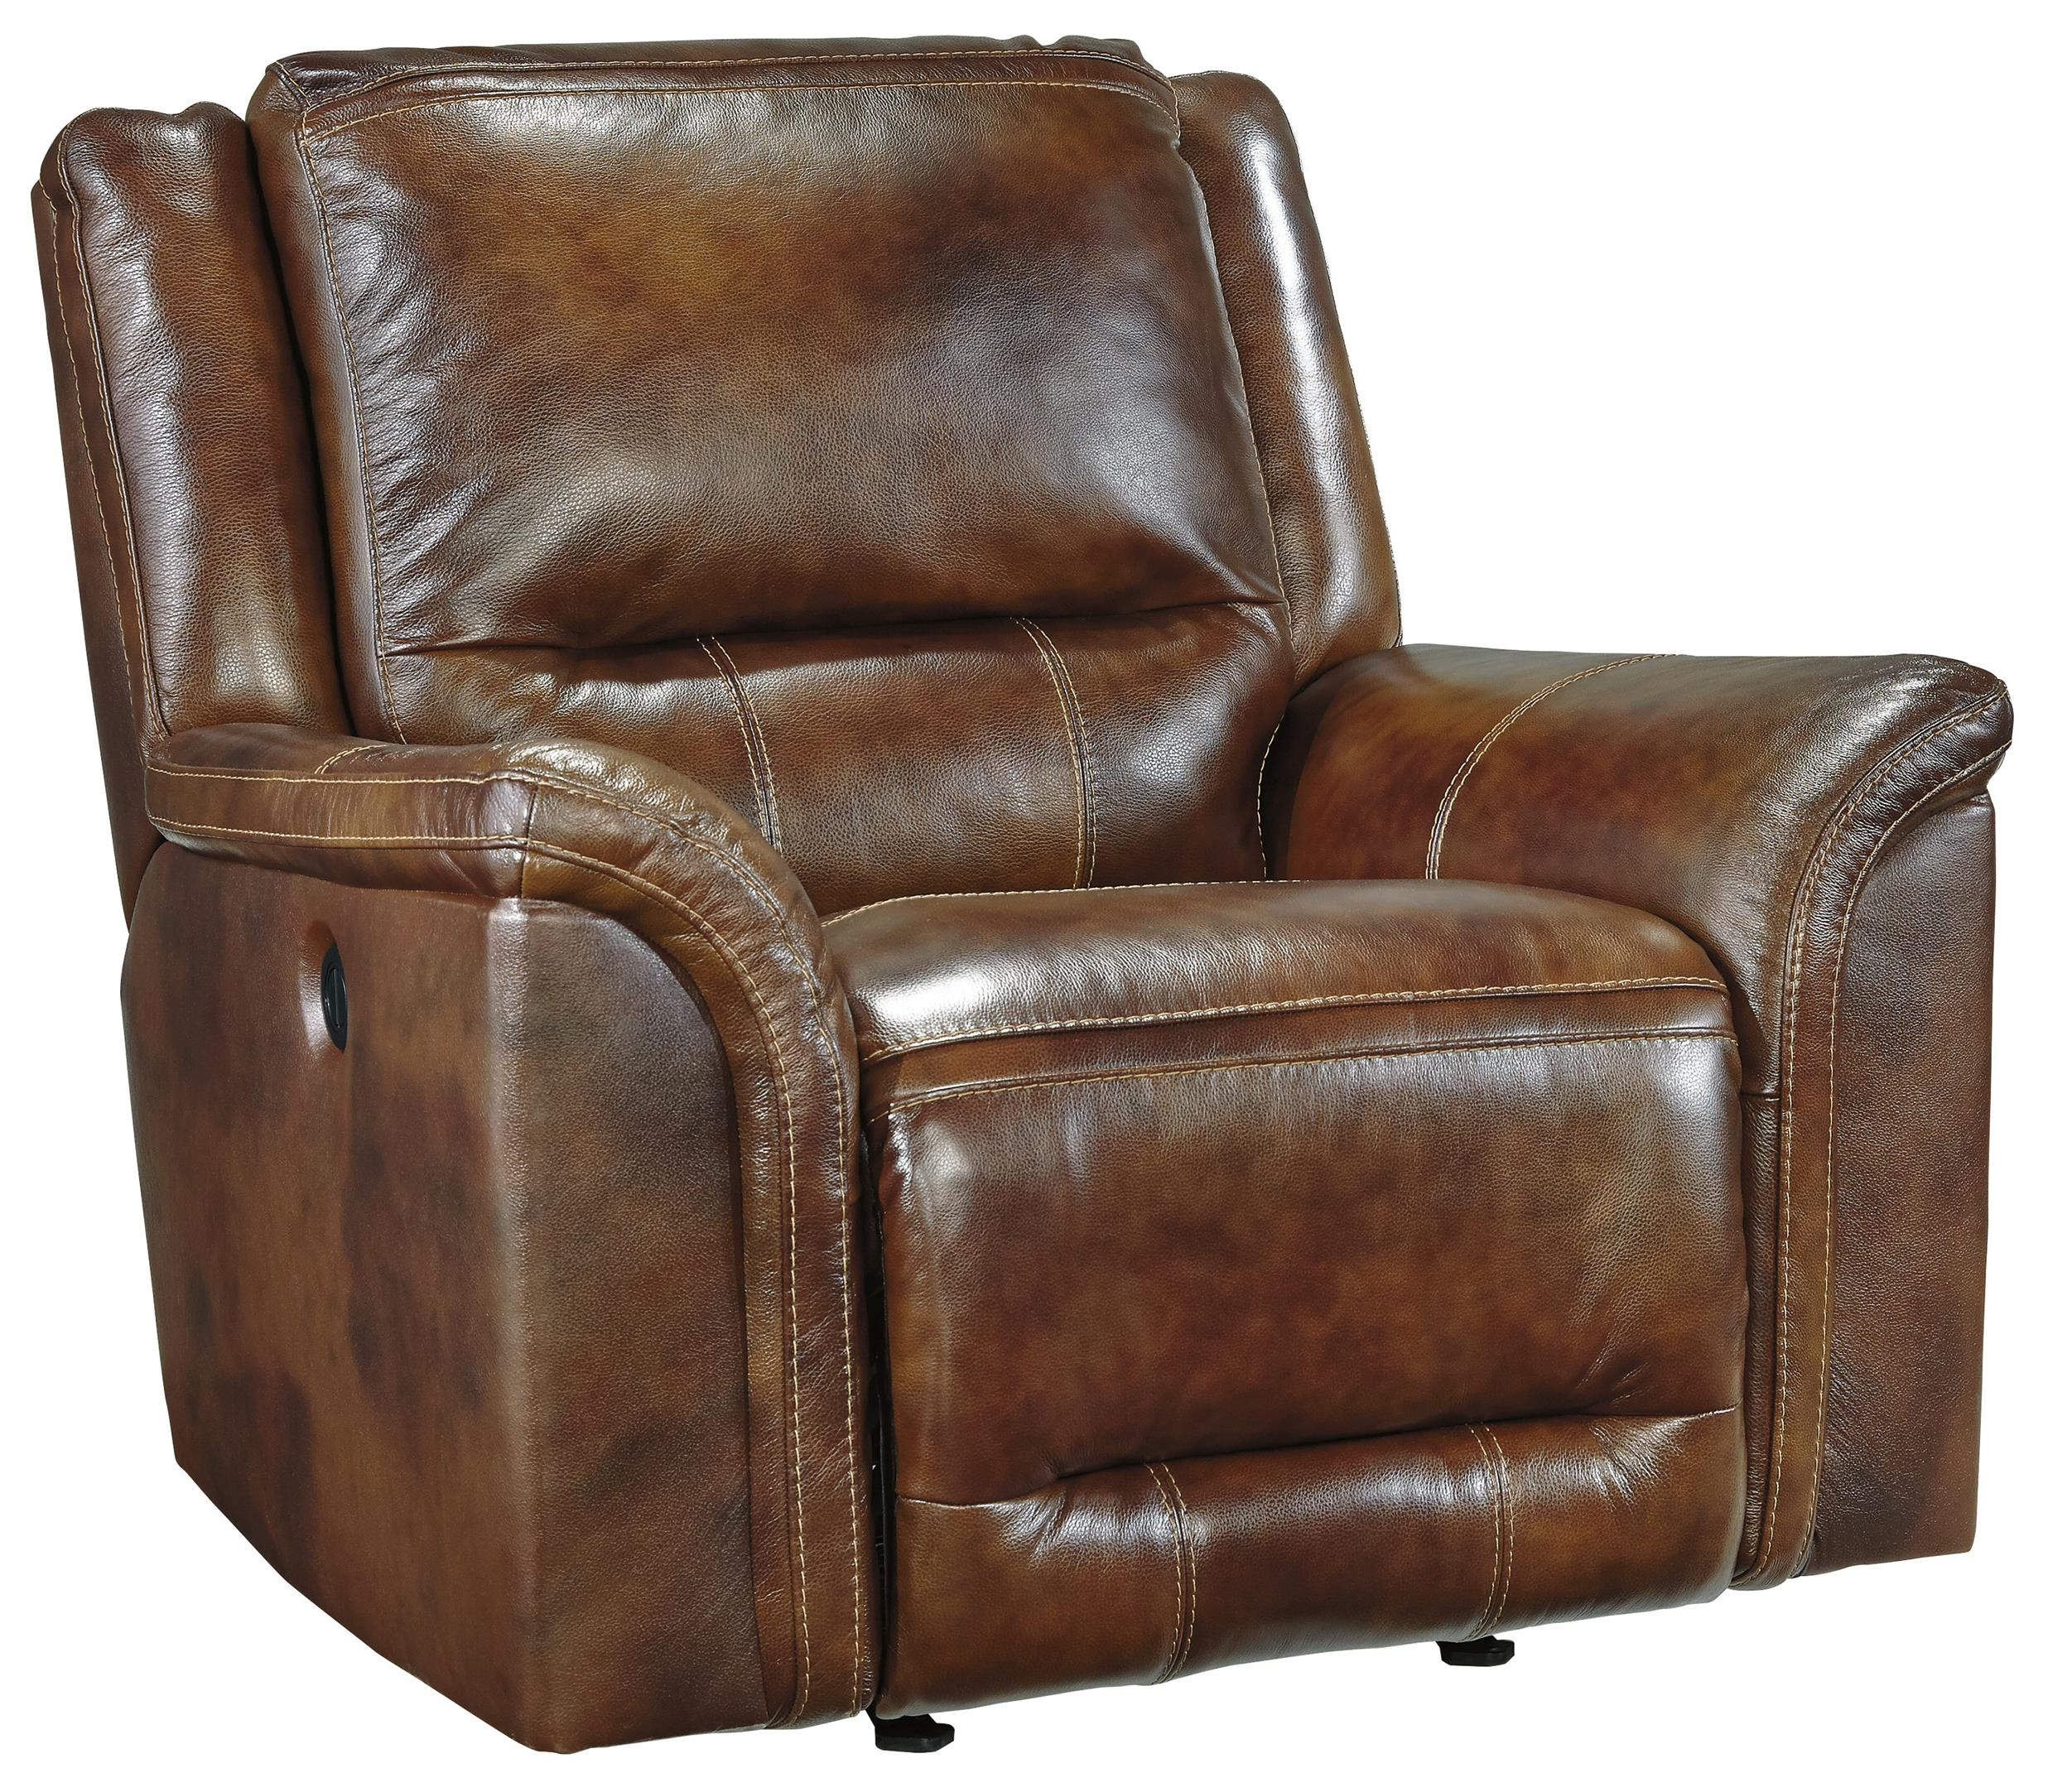 Signature Design by Ashley Jayron Rocker Recliner - Item Number: U7660025